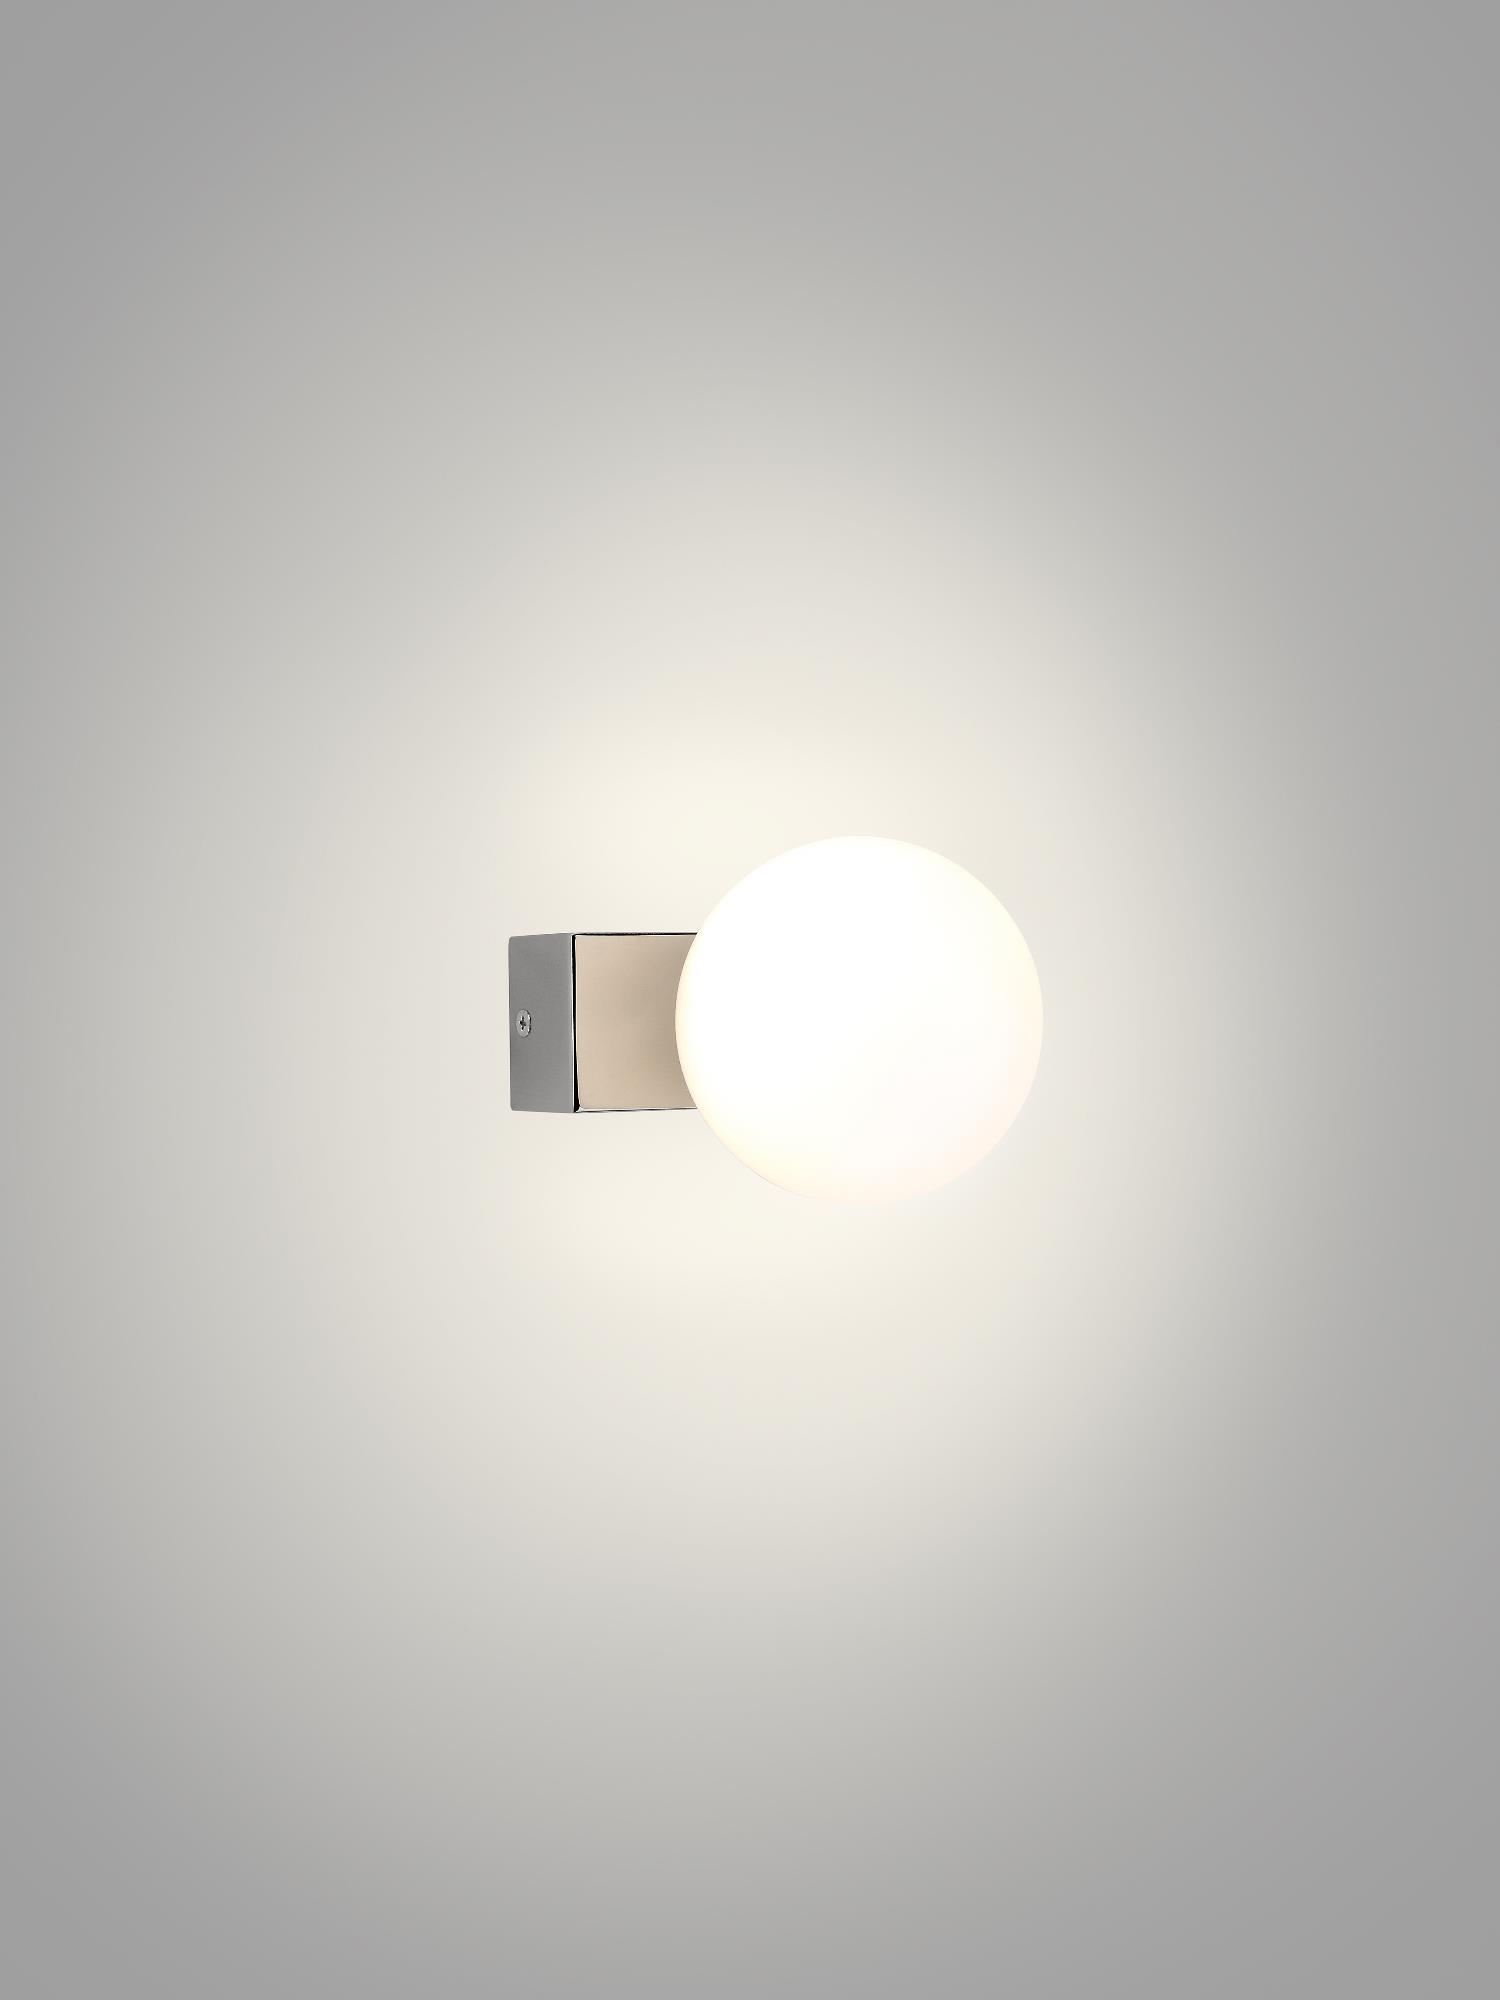 Philips Drops 1x42W - Light Unit